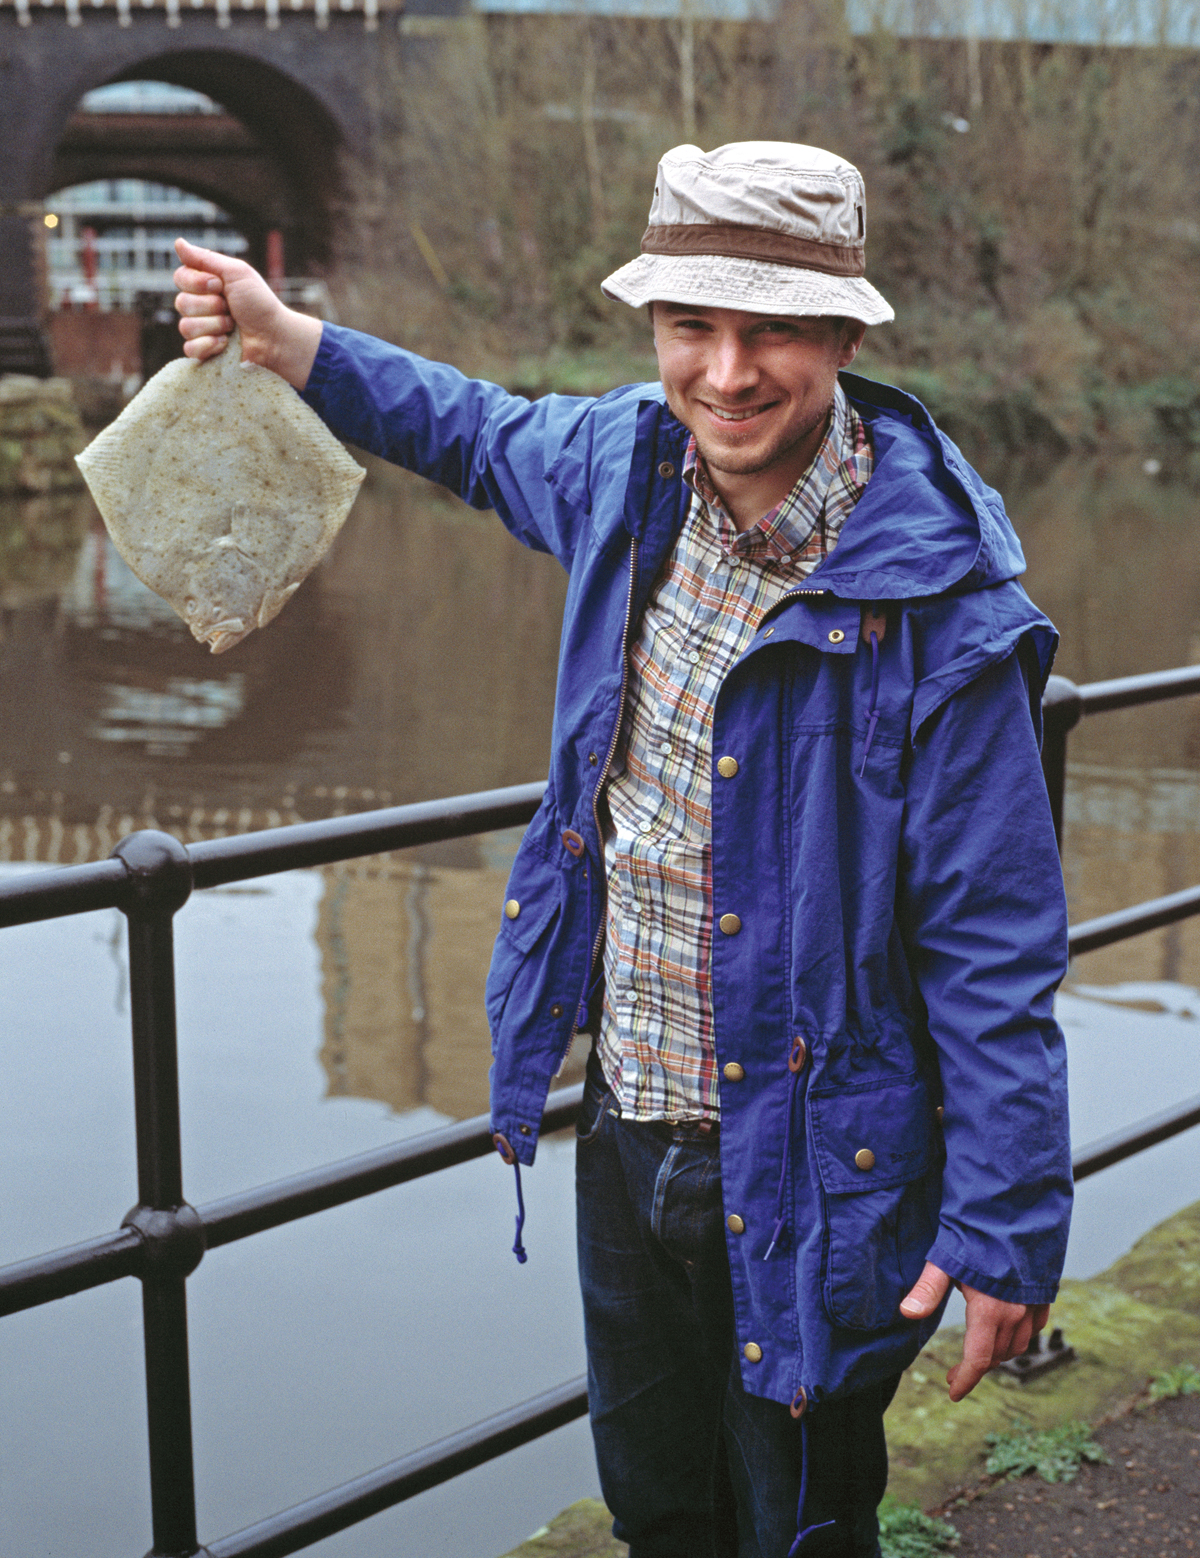 Hat and jacket by Barbour, shirt by Beams+, fish – model's own